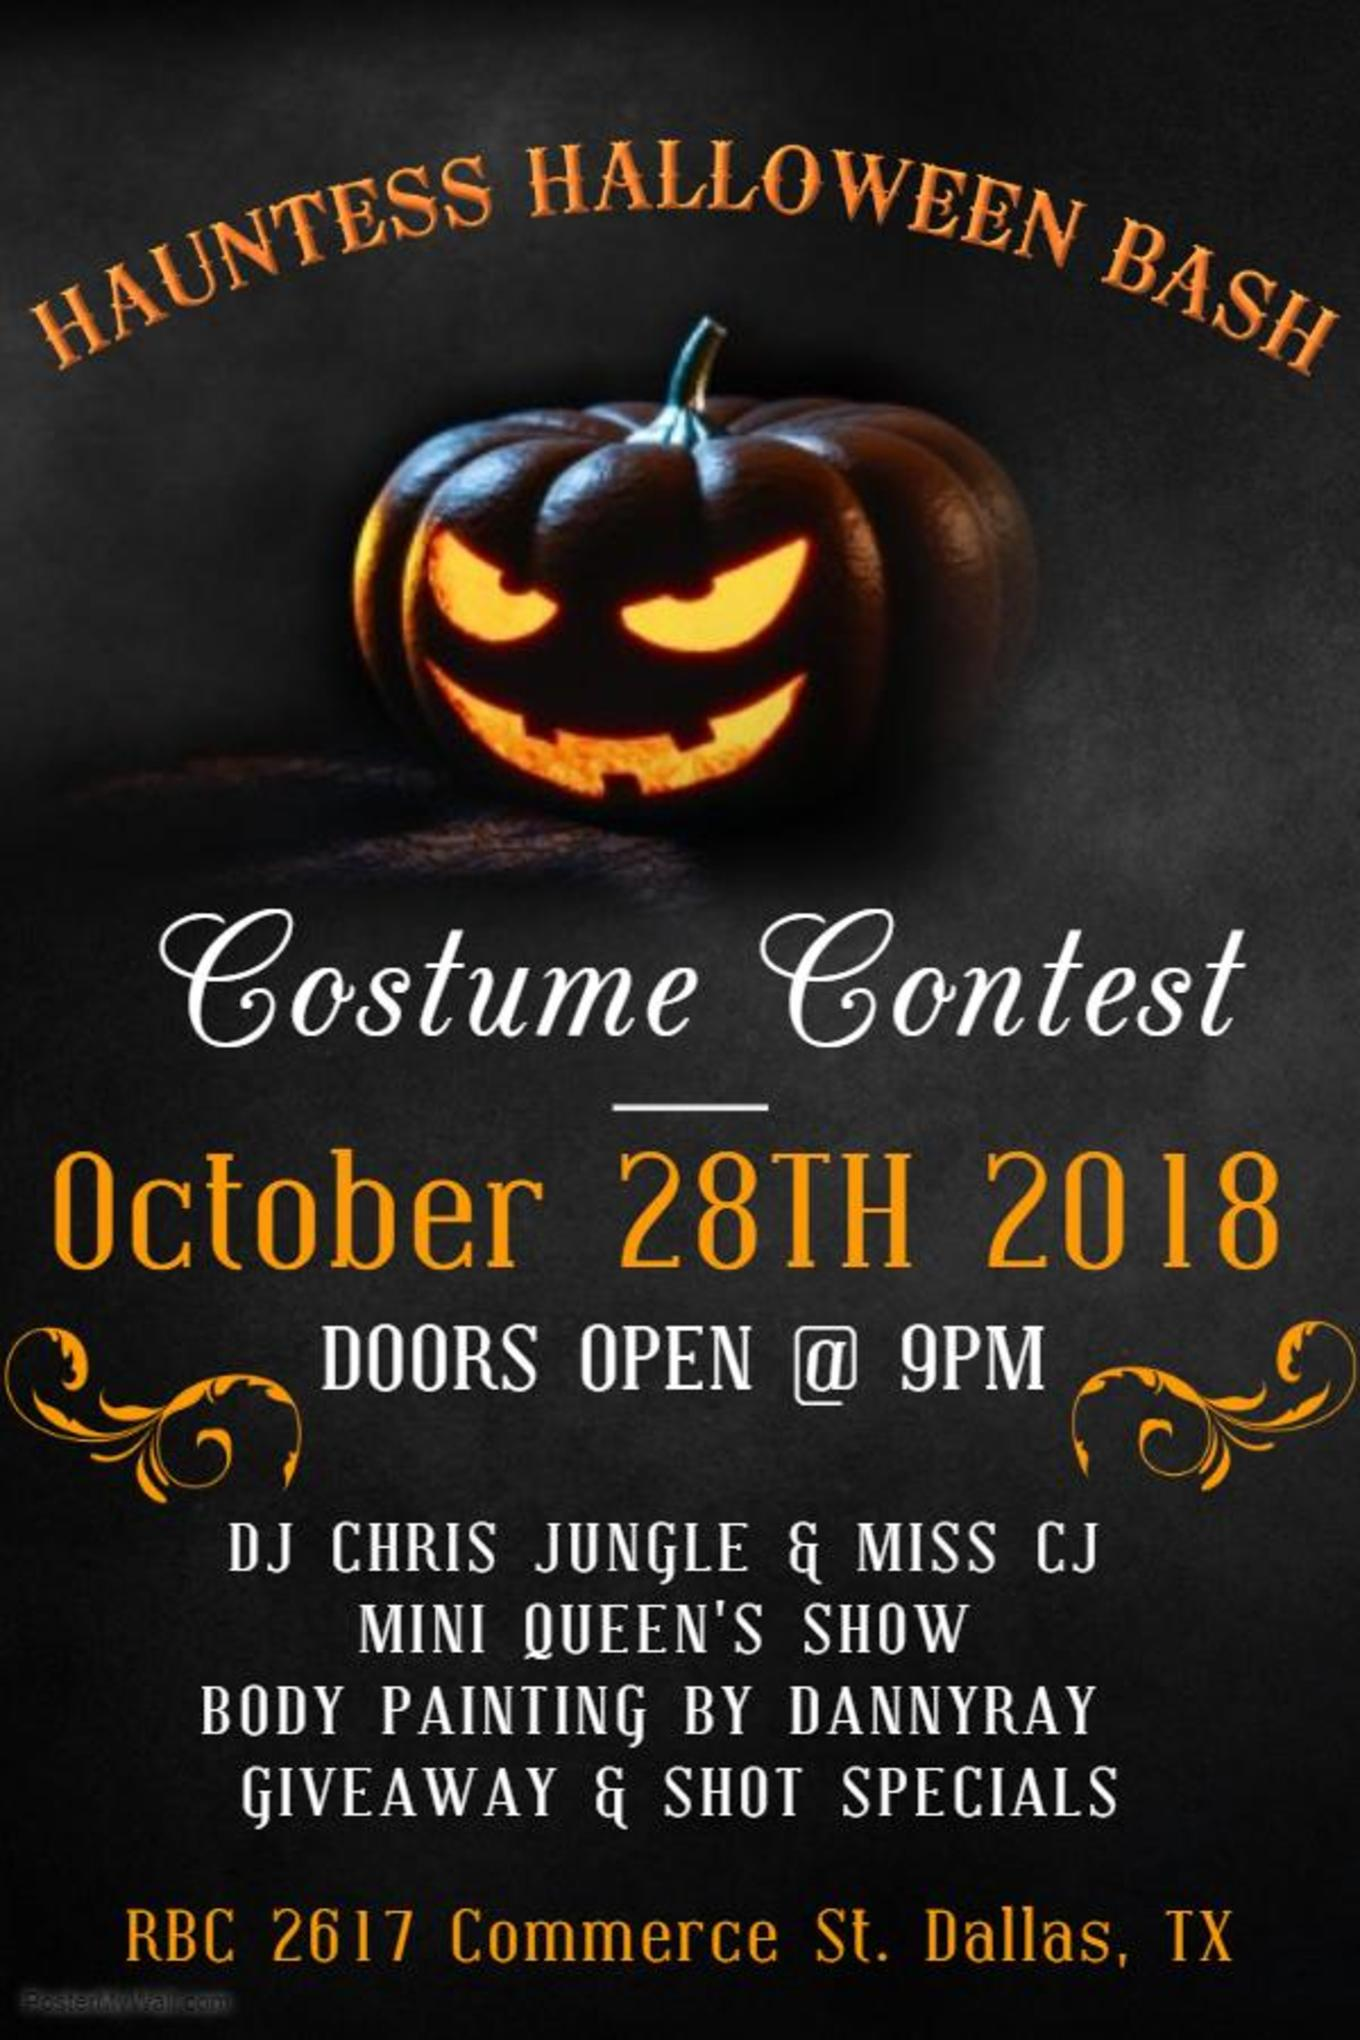 hauntess halloween bash - tickets - rbc, dallas, tx - october 28, 2018